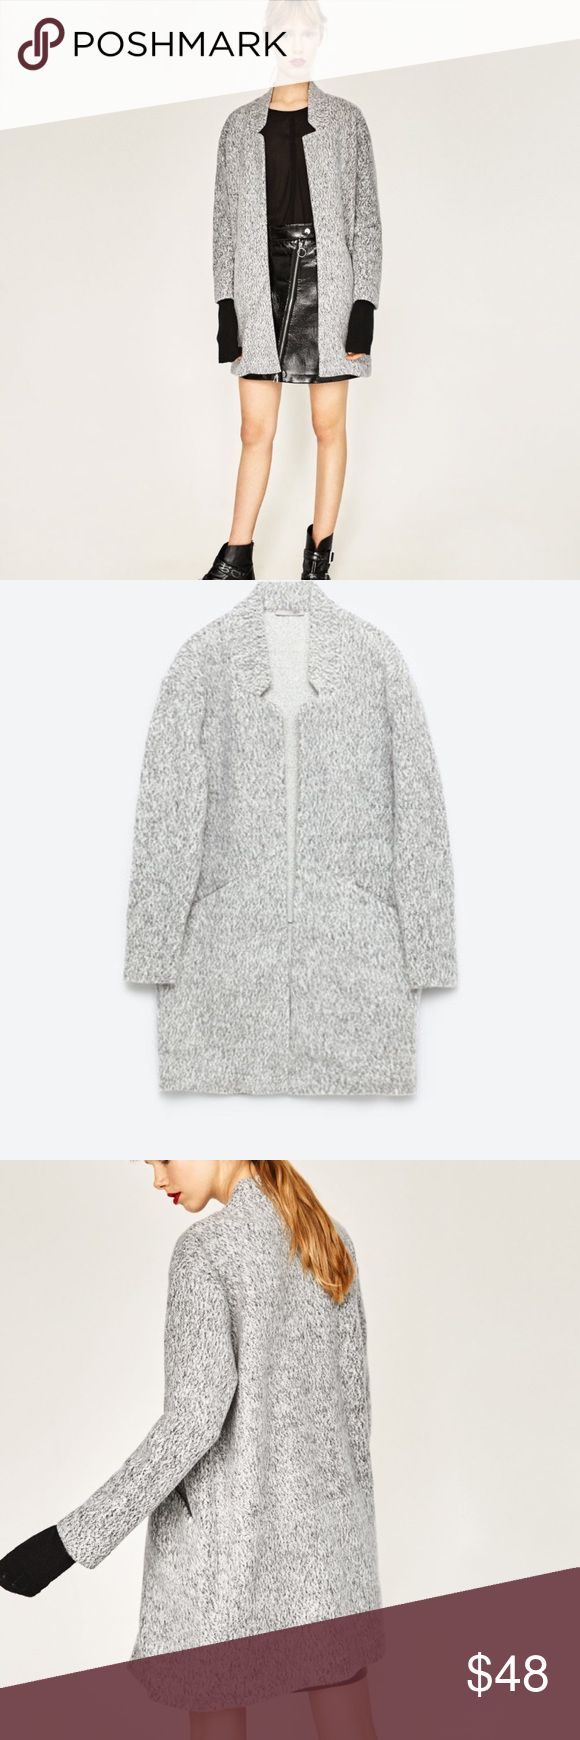 Zara Grey Coat {Price Firm} Brand new with tags. 62 % polyester 38% cotton. Side pockets. Perfect light material for a spring night time outfit or with layering during the cold months! Zara Jackets & Coats